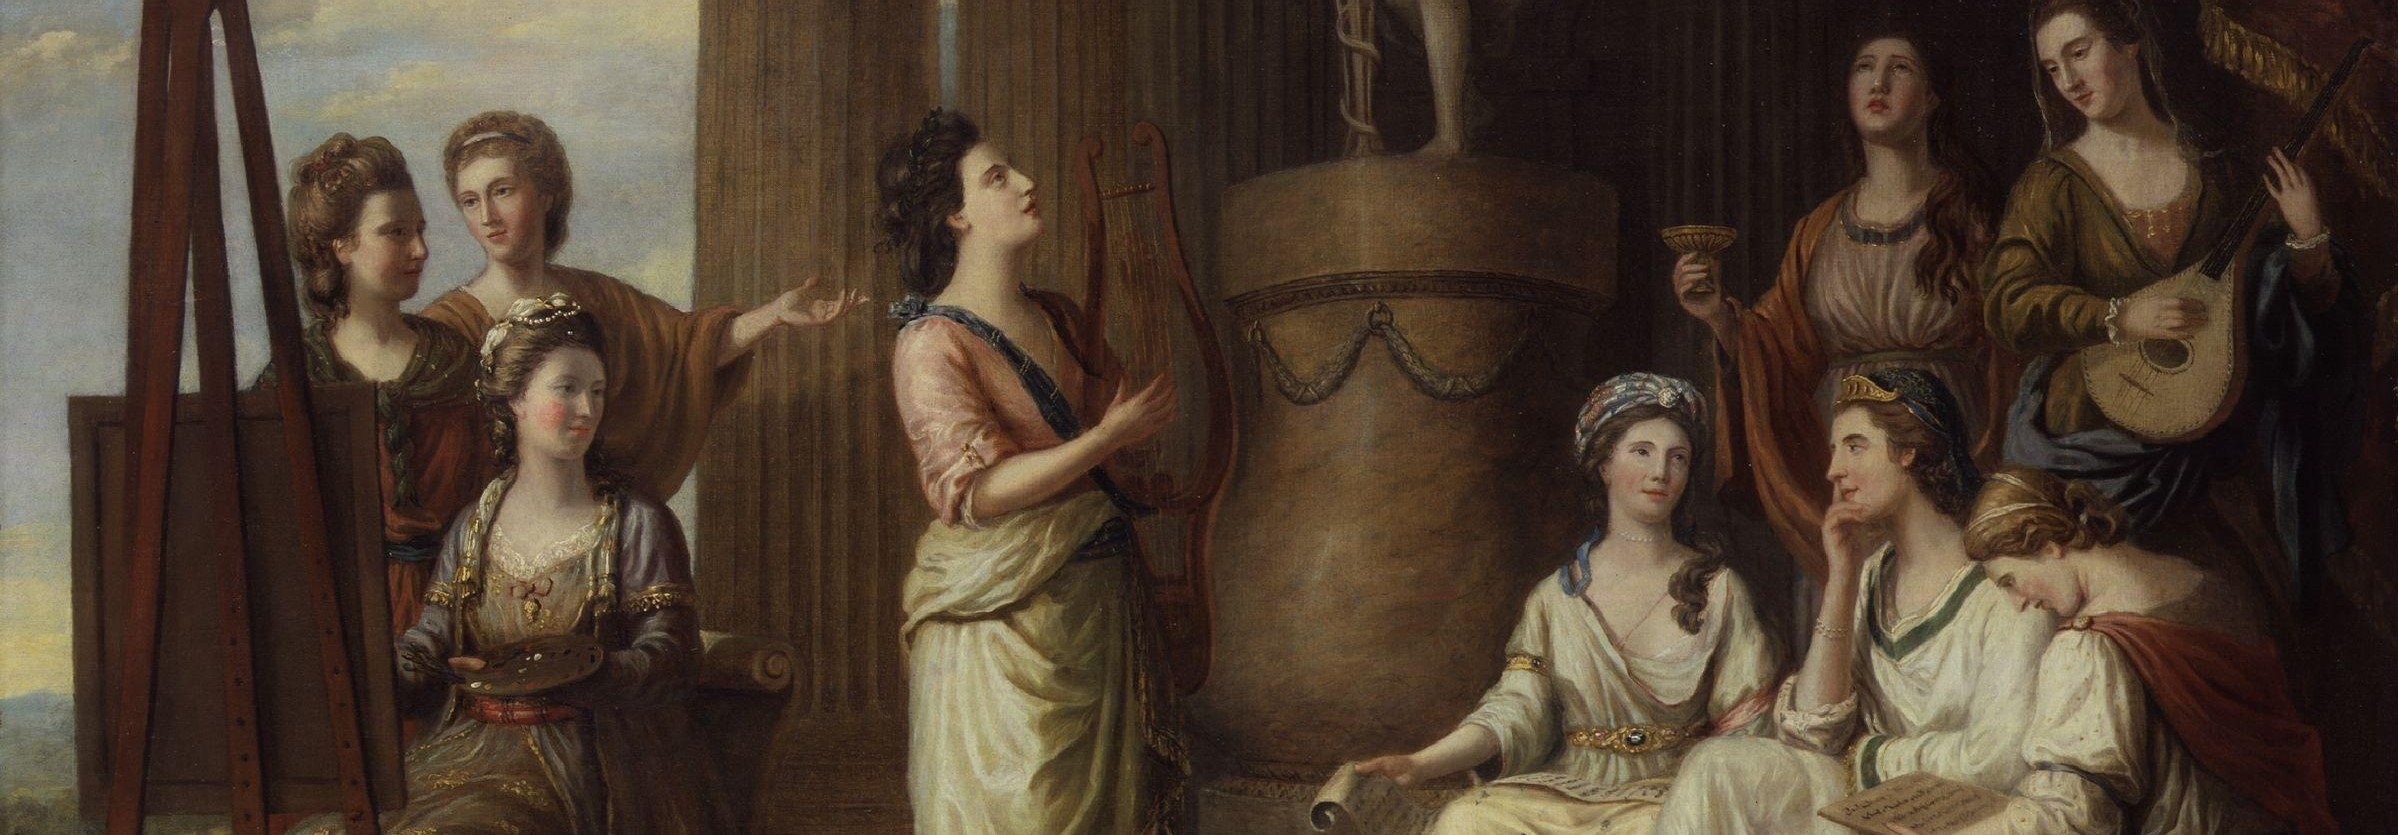 """Portraits in the Characters of the Muses in the Temple of Apollo"" by Richard Samuel (1778)"